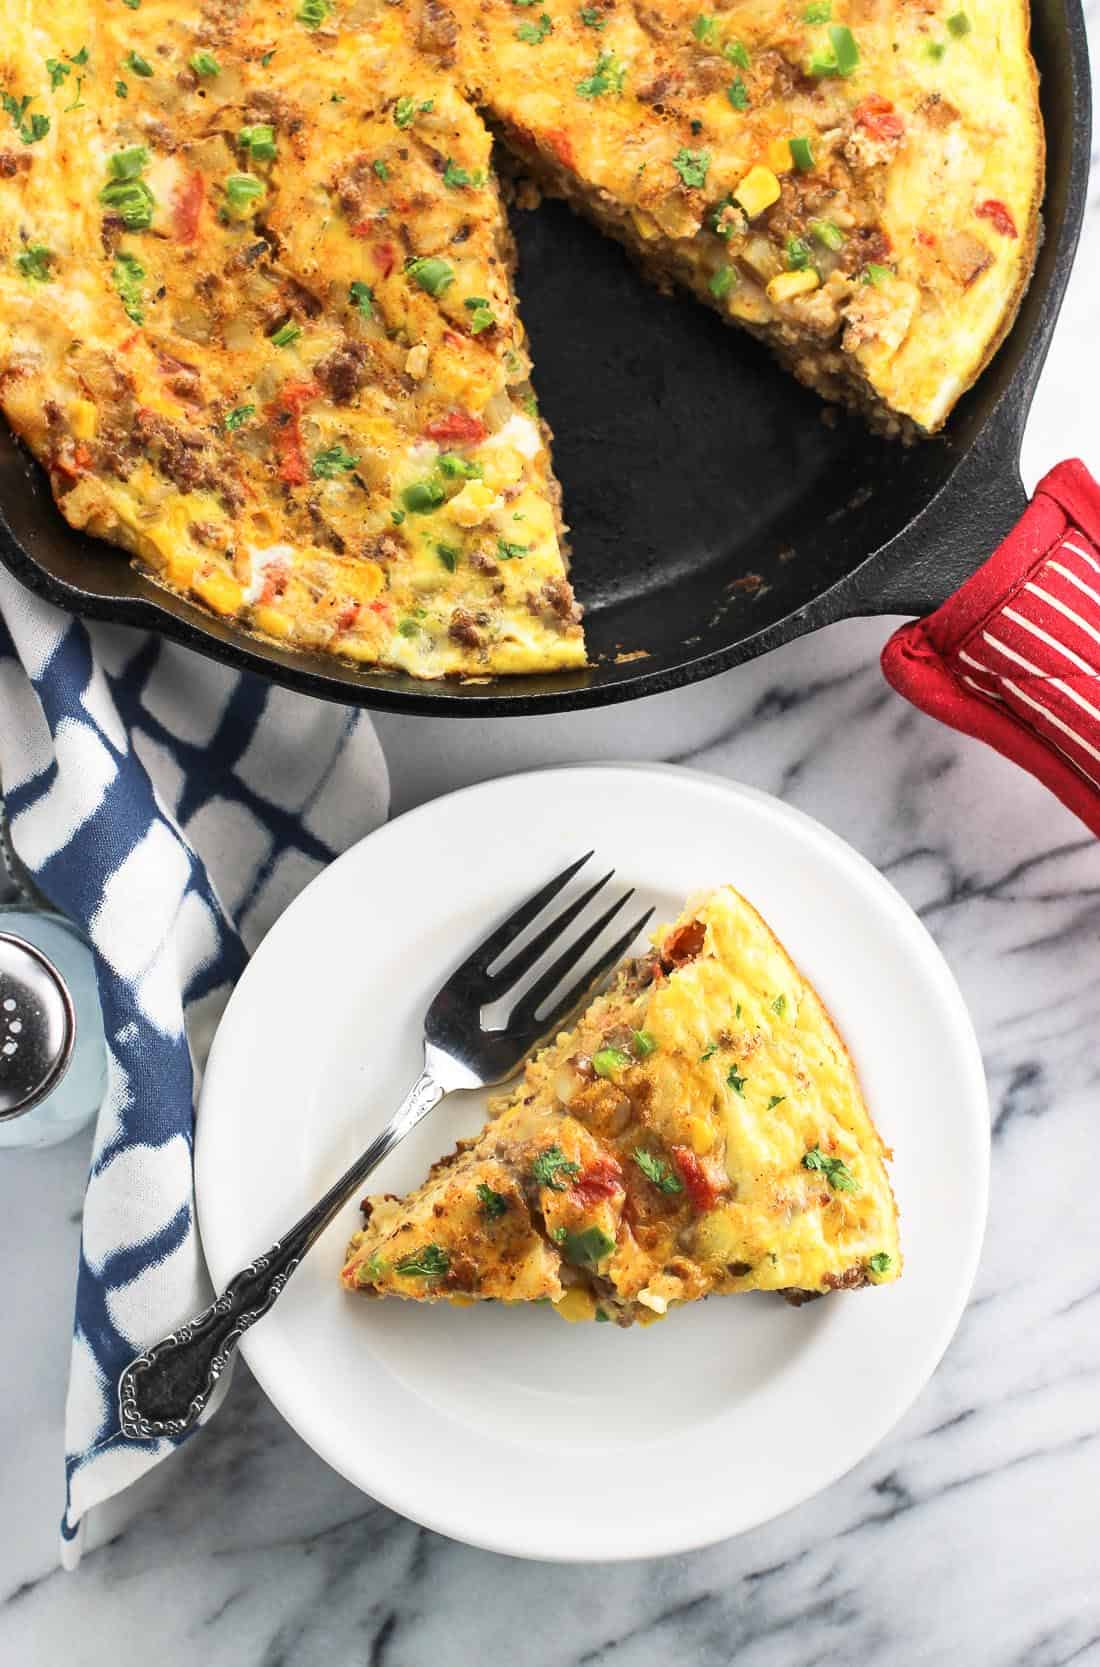 This southwestern frittata is loaded with potato, beef, rice, cheese, veggies, and more for a hearty breakfast, brunch, or anytime meal.